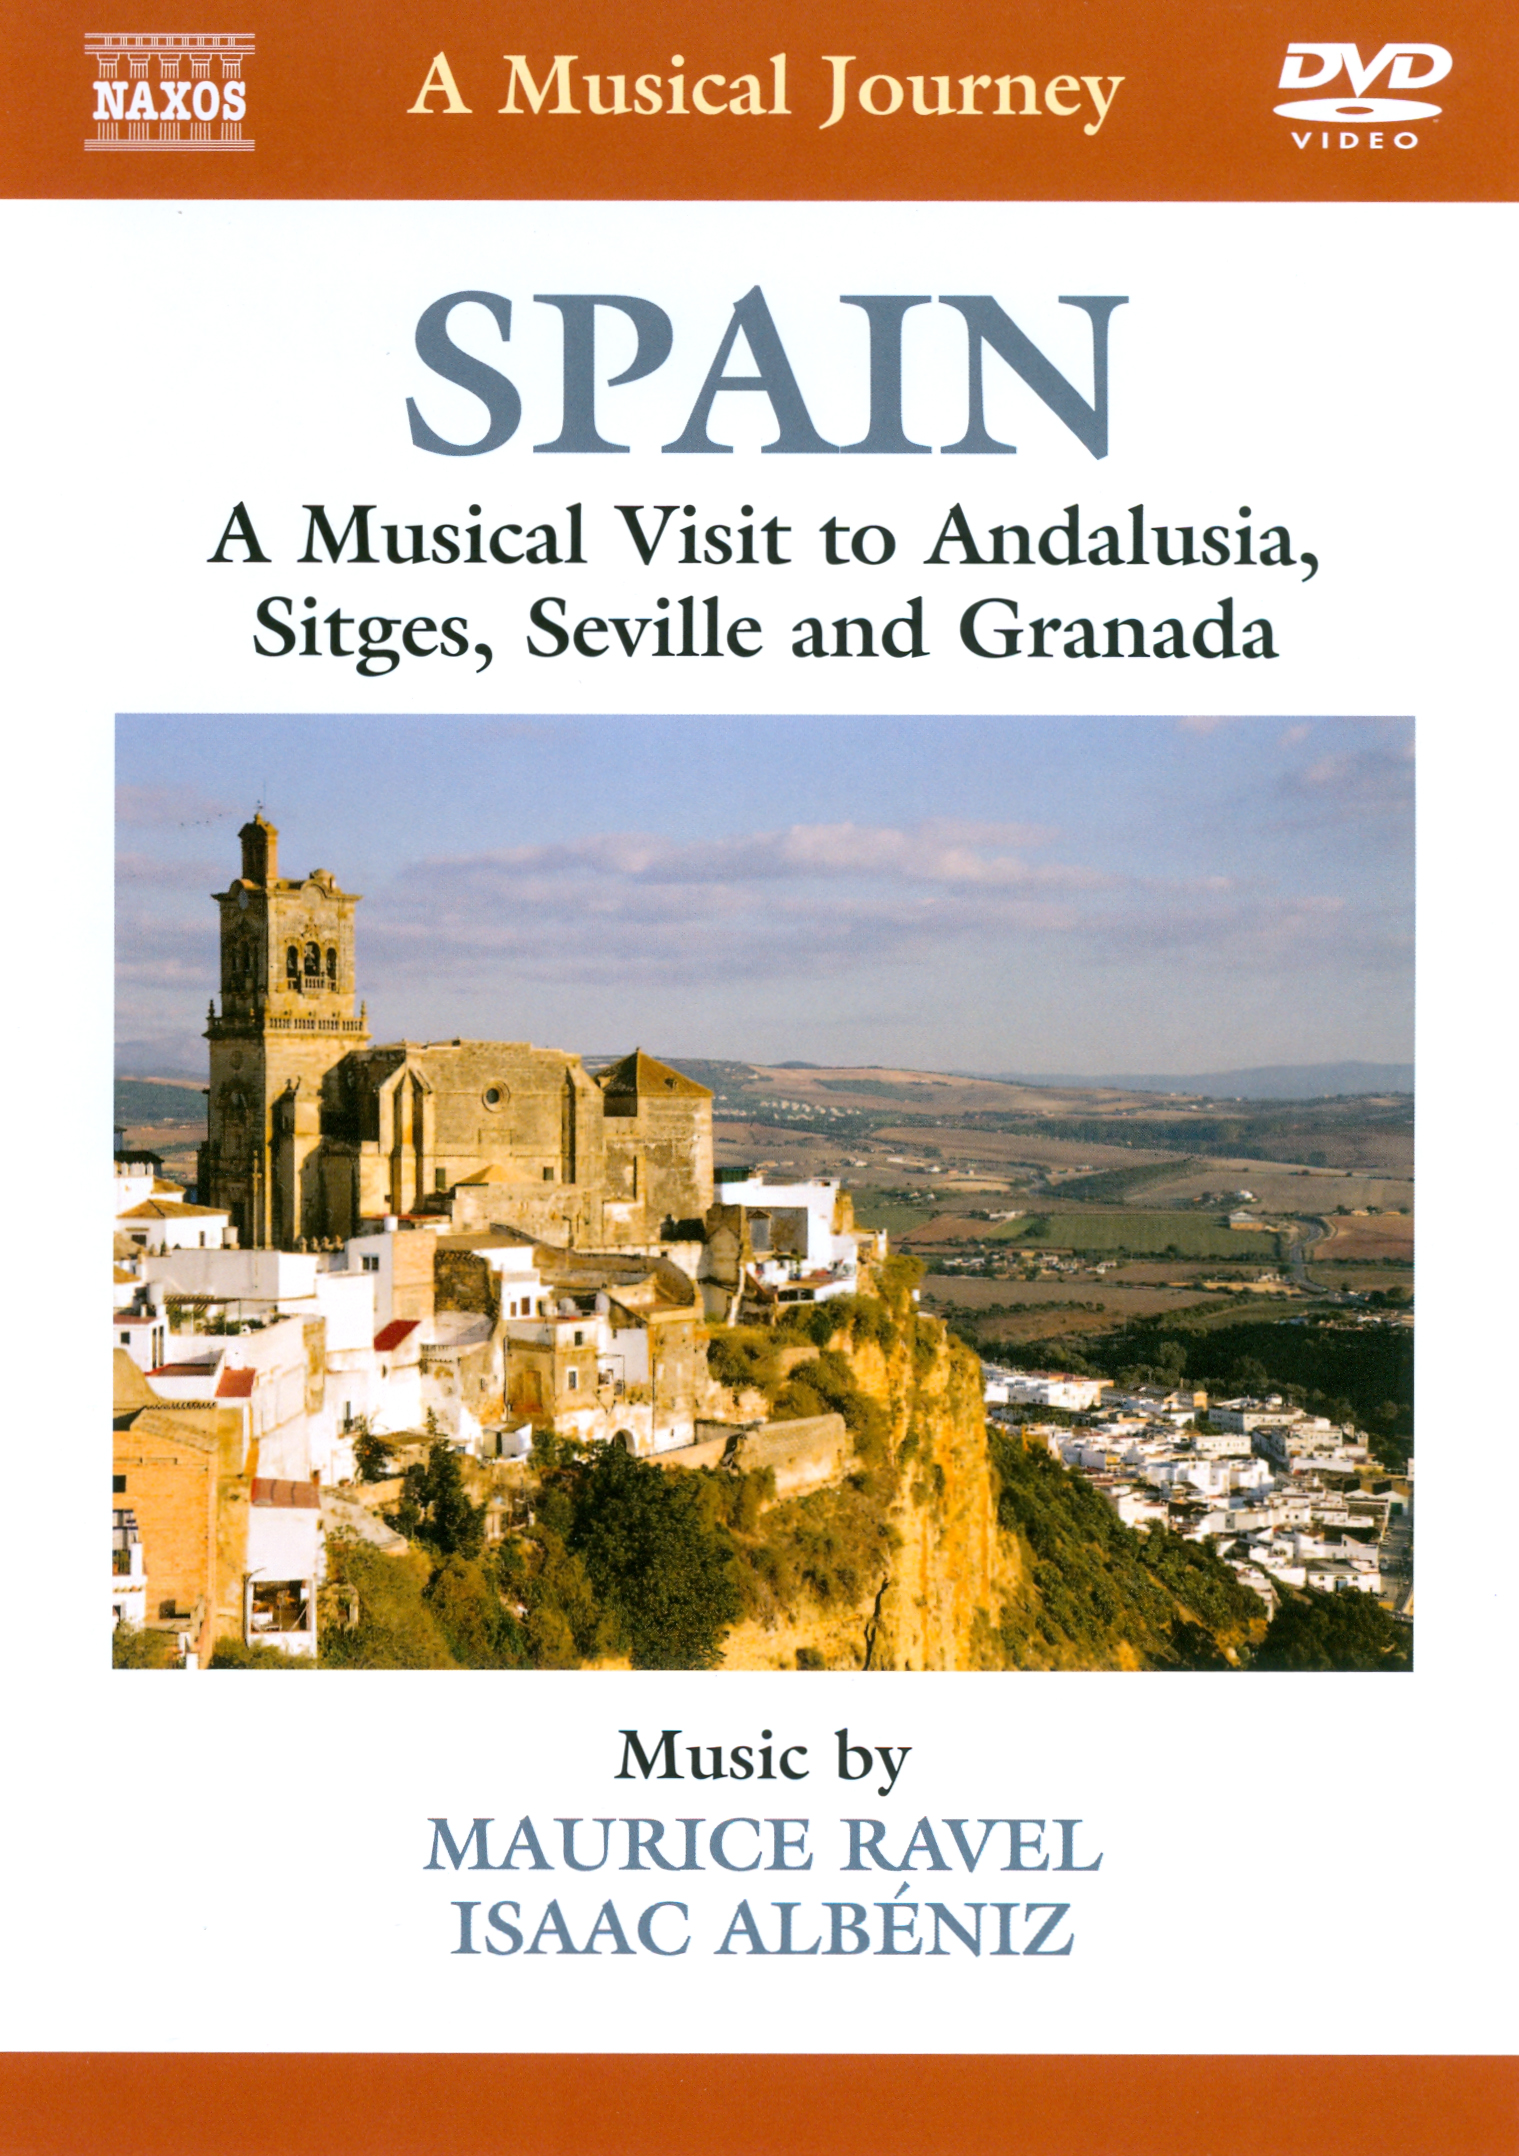 A Musical Journey: Spain - A Musical Visit to Andalusia, Sitges, Seville and Granada